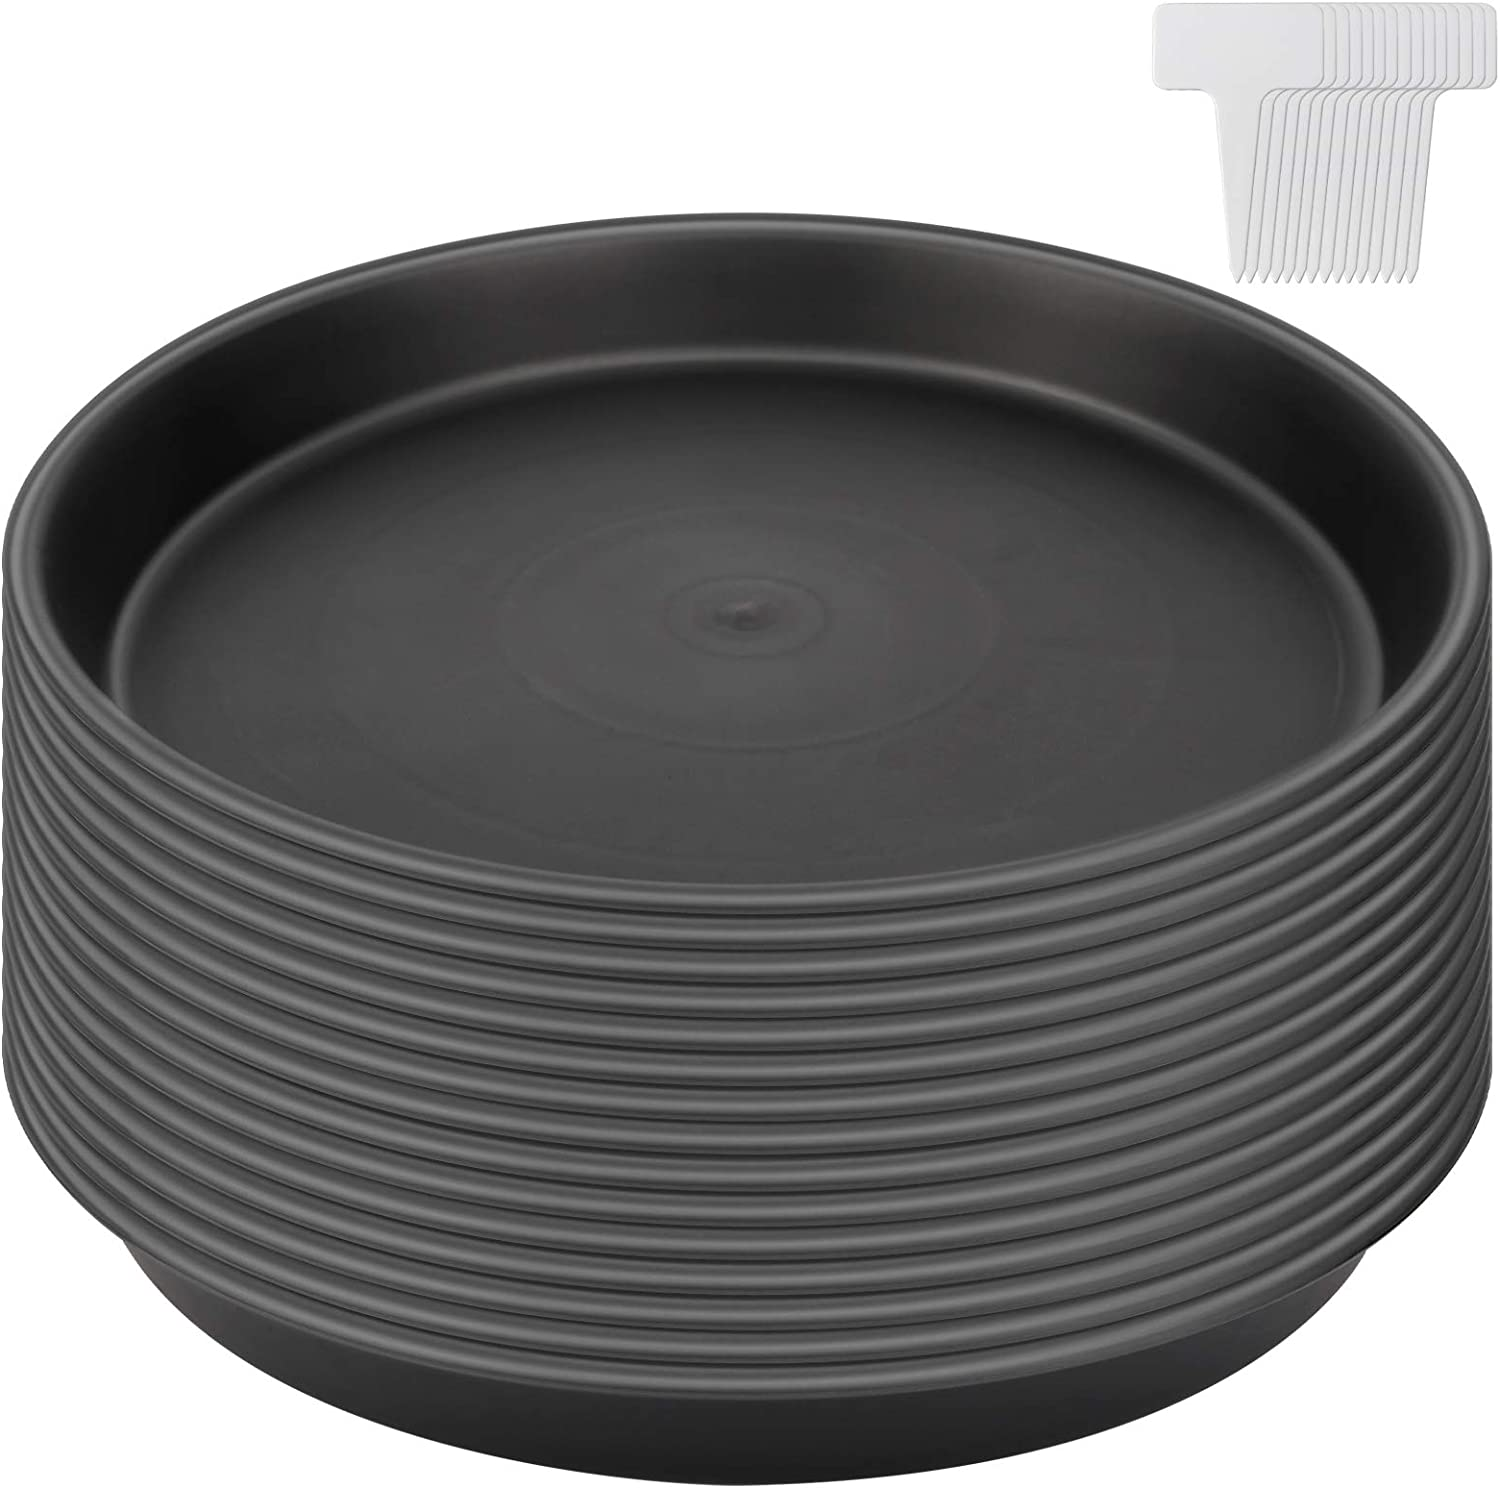 KEILEOHO 15 PCS 12 Inch Plant Saucer, Black Plastic Flower Plant Pot Tray with White Plant Labels Thick Round Plant Drip Tray for Indoor Outdoor Use,Top diameter 12 inches, bottom diameter 10.5 inches